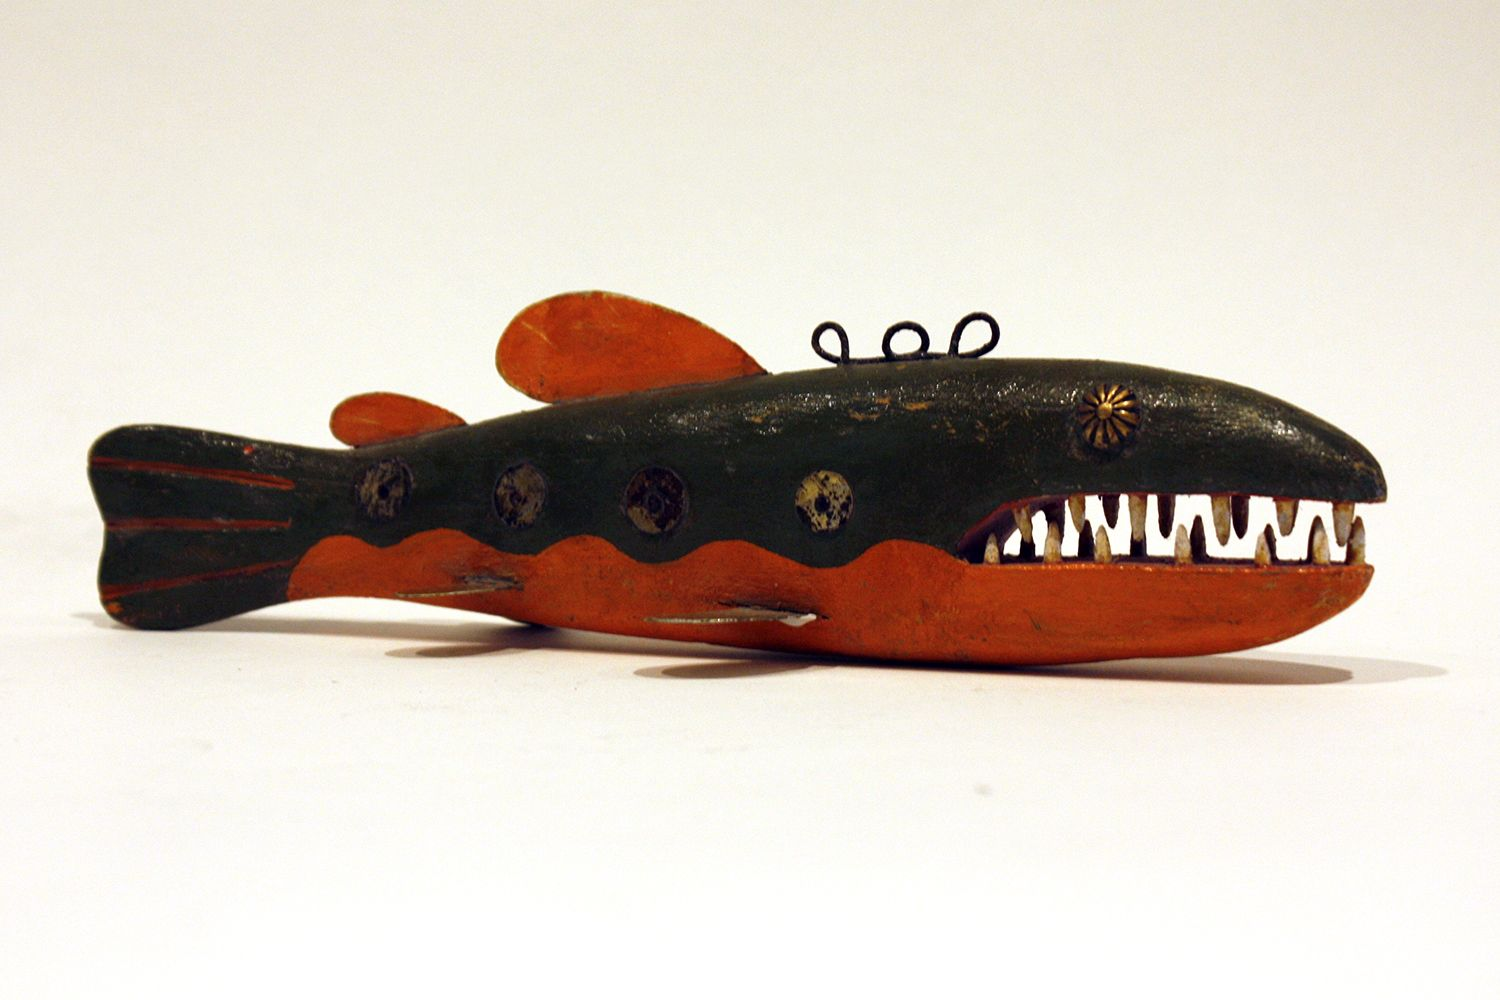 """FISH DECOY/ This handcrafted fish decoy, by Gordon Swenarton, is a colorful, wooden piece. Olive on top with a dark orange belly, the fish is studded with metal fins and """"scales"""" and eyes. Even the sharp-looking white teeth have some intentional discoloration, which speaks to the detailed work of the artist and his high-quality craftsmanship. 10 1/2"""" x 3"""" x 3"""". Photo by Sam Fein"""